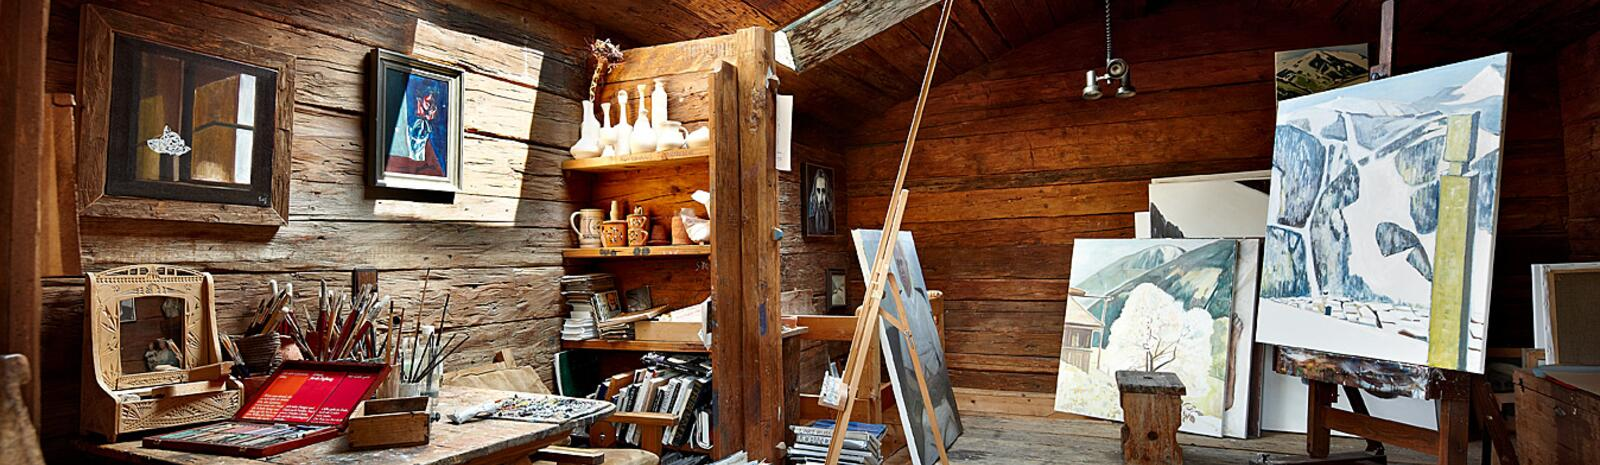 The painter's studio | © Michael Huber | Huber Fotografie